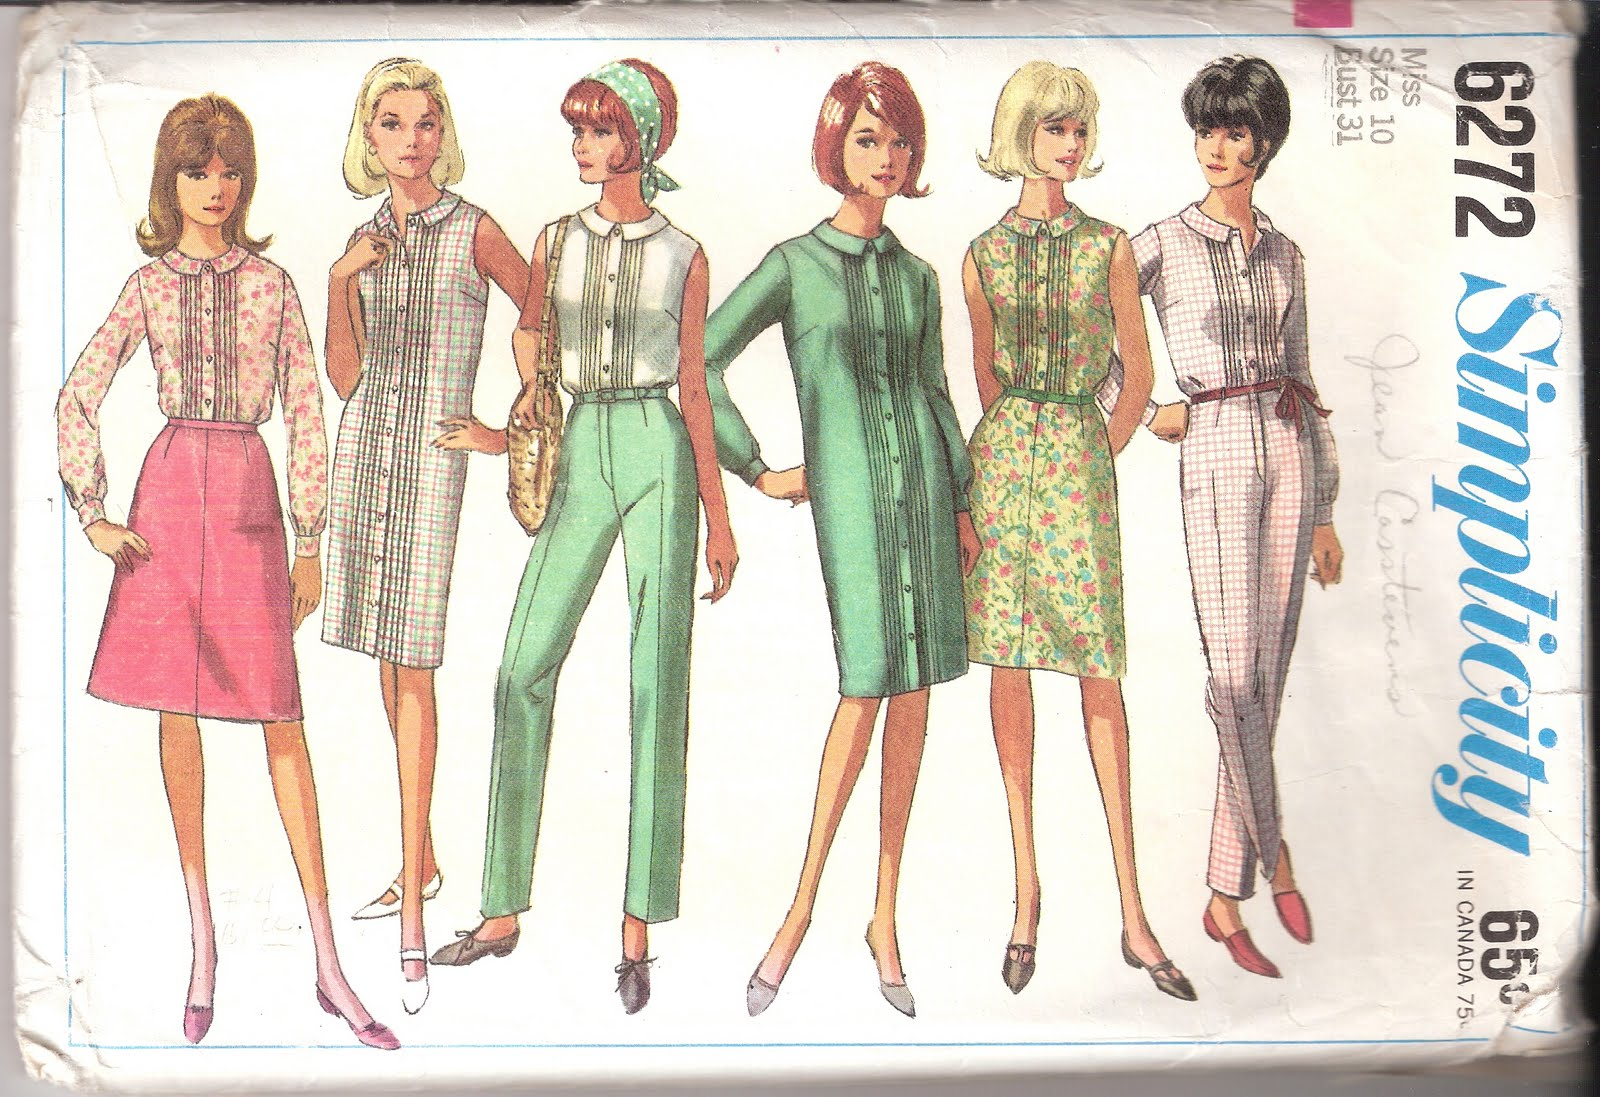 Pin 60s Vintage Fashion Guide Swinging Sixties Quant Carnaby Street On Pinterest